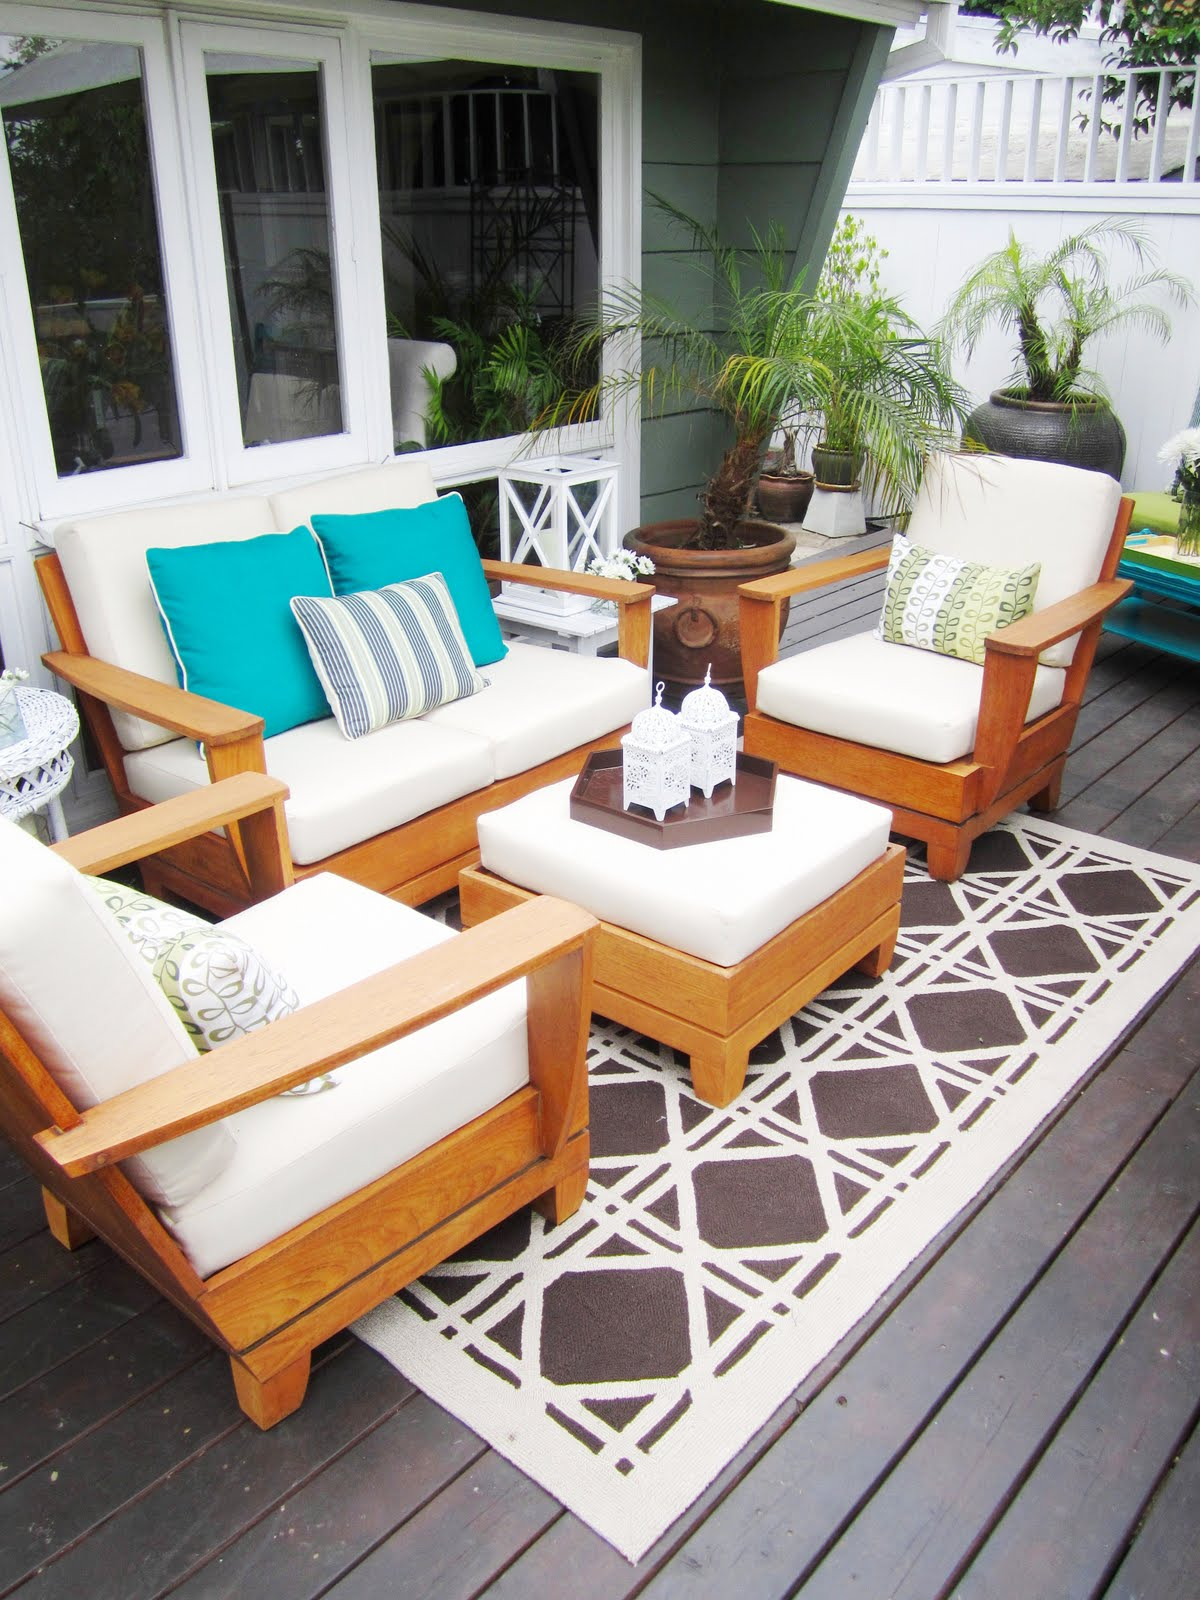 Bold patterns and bright colors transform your outdoor space